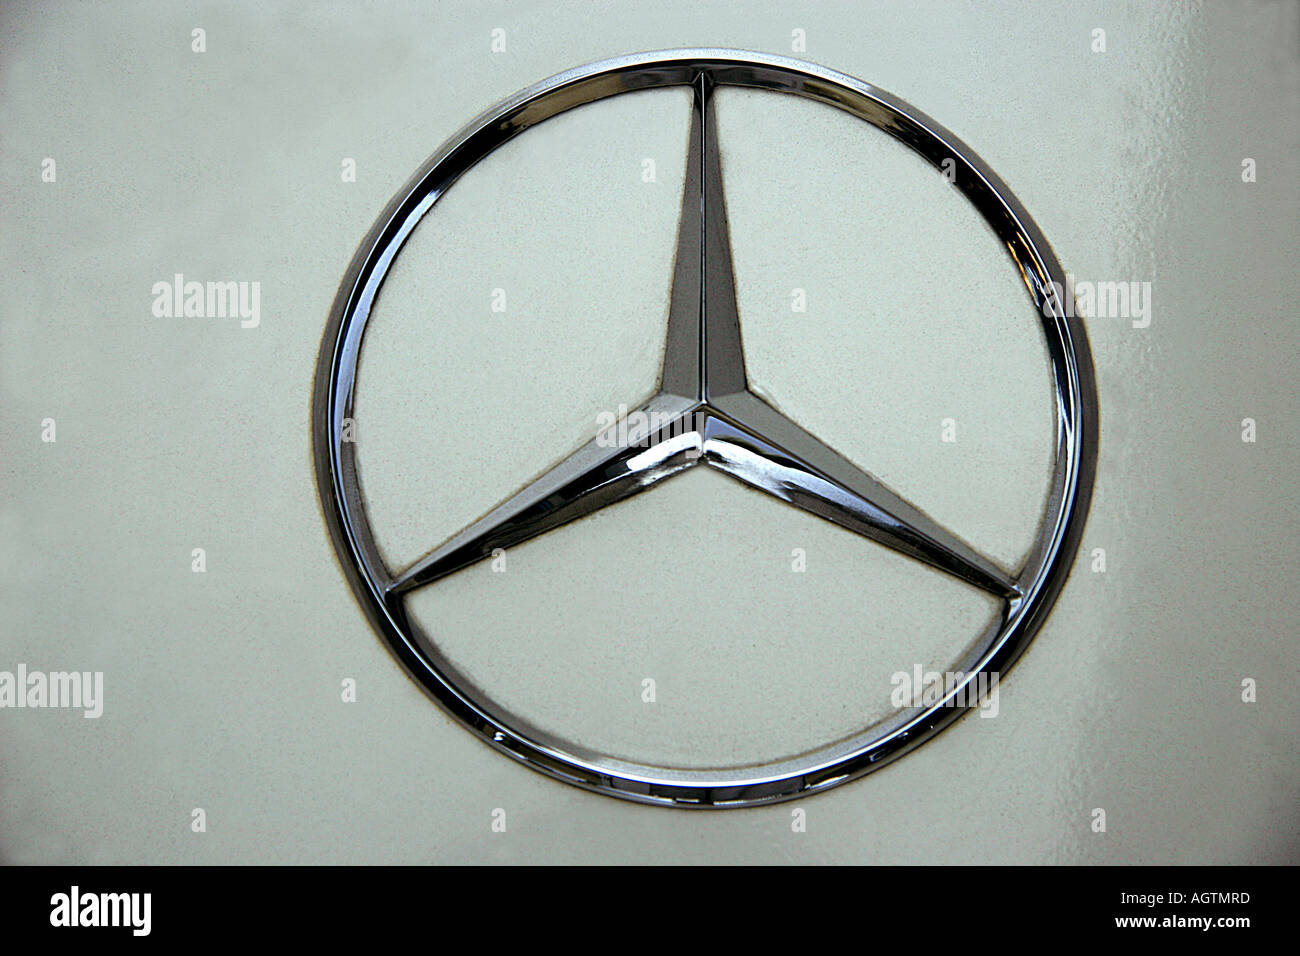 Vintage car emblem of automobile mercedes benz car auto quality vintage car emblem of automobile mercedes benz car auto quality rich status symbol round sphere circular circle star three point ssk 79672 biocorpaavc Image collections